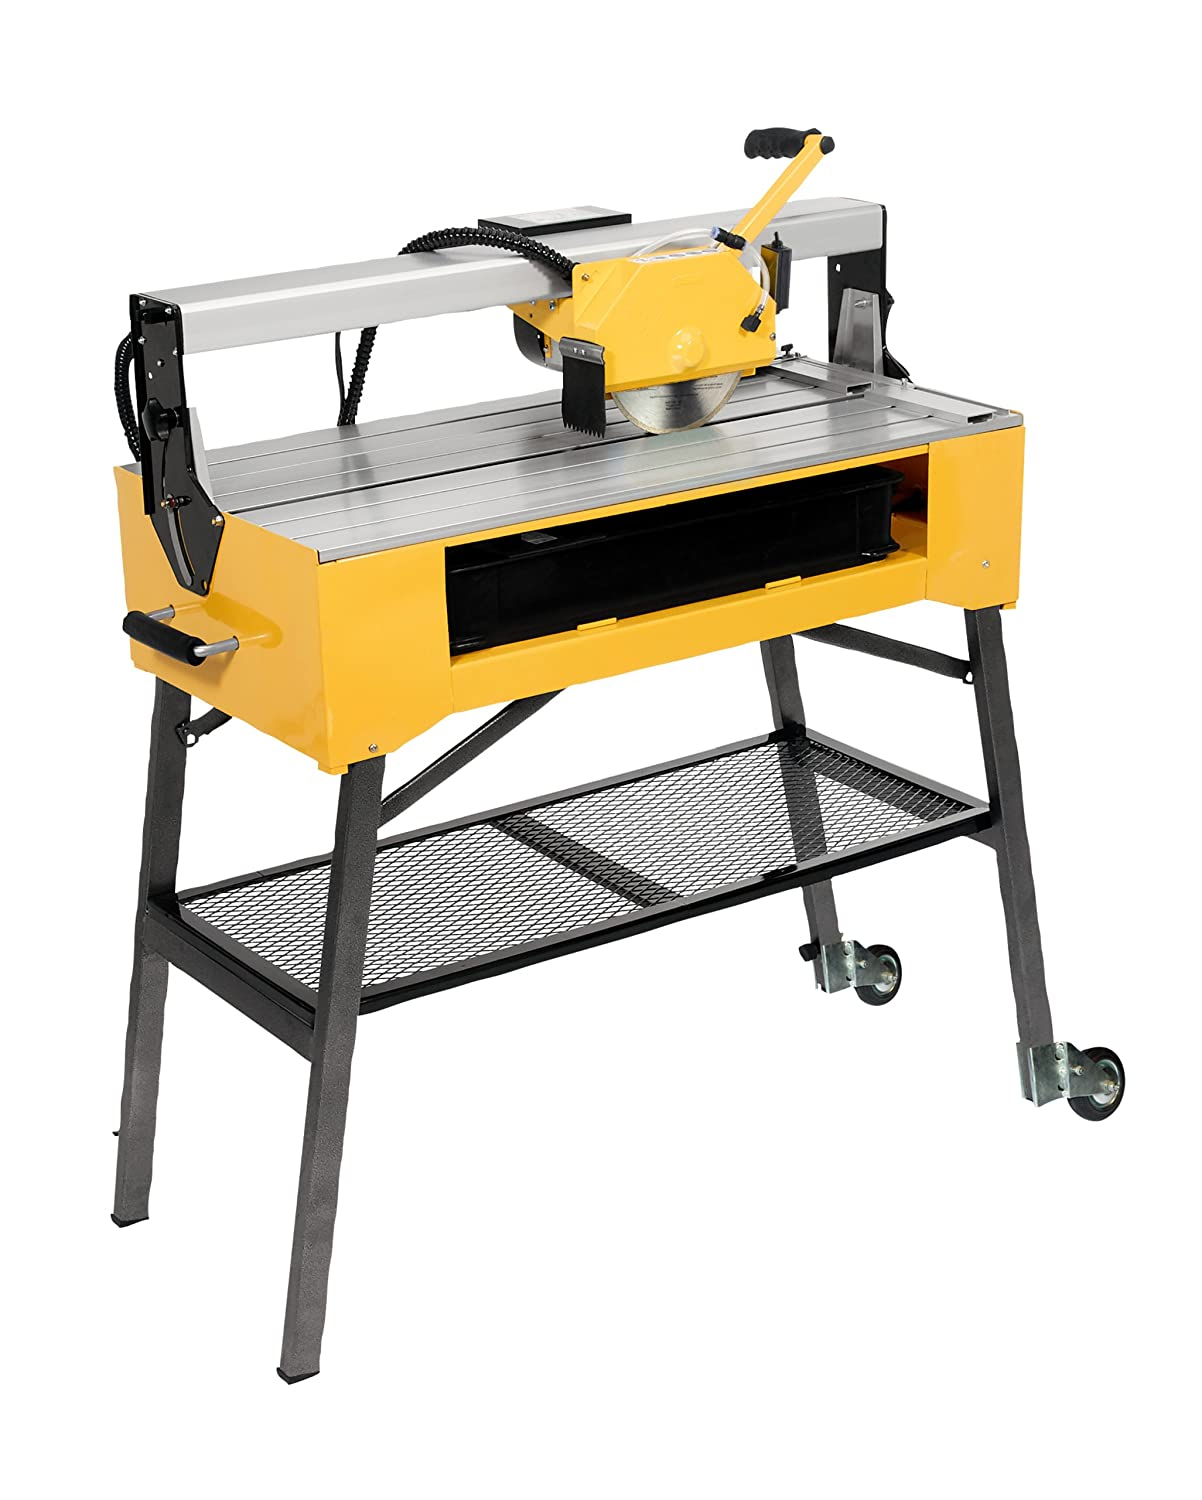 QEP 83200 24 Inch Bridge Tile Saw with Water Pump and Stand